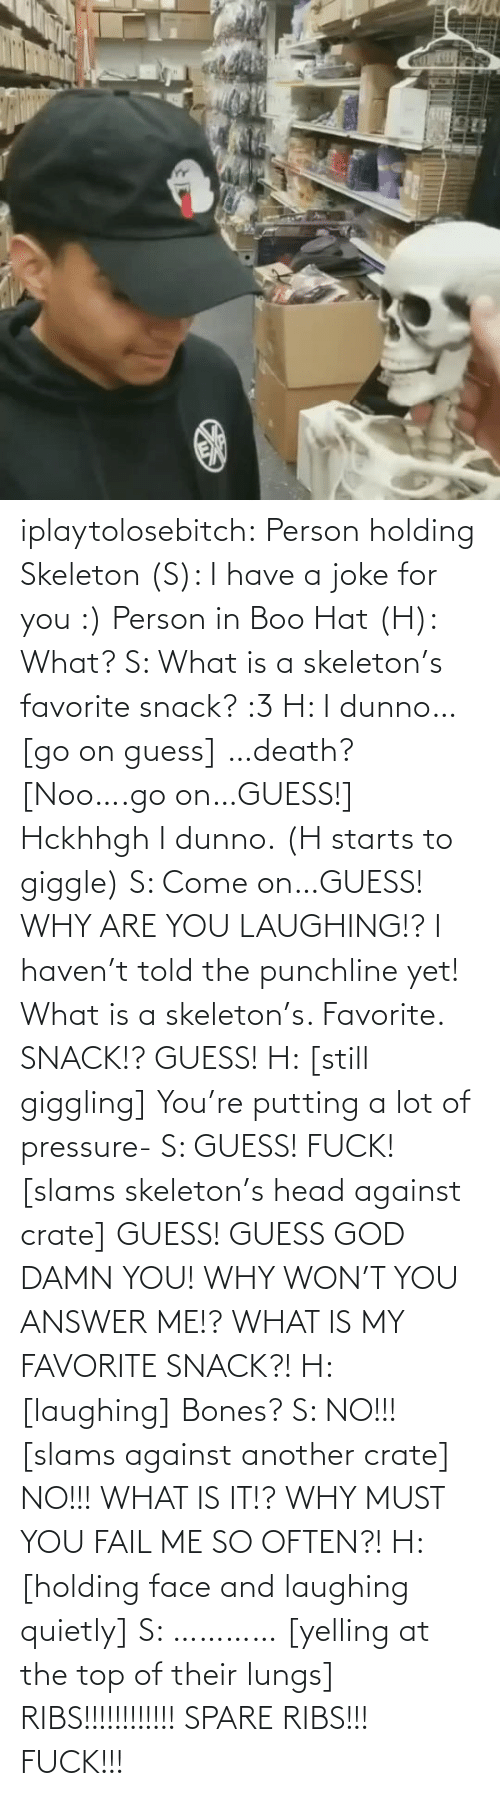 why are you laughing: iplaytolosebitch:  Person holding Skeleton (S): I have a joke for you :) Person in Boo Hat (H): What? S: What is a skeleton's favorite snack? :3 H: I dunno… [go on guess] …death? [Noo….go on…GUESS!] Hckhhgh I dunno. (H starts to giggle) S: Come on…GUESS! WHY ARE YOU LAUGHING!? I haven't told the punchline yet! What is a skeleton's. Favorite. SNACK!? GUESS! H: [still giggling] You're putting a lot of pressure- S: GUESS! FUCK! [slams skeleton's head against crate] GUESS! GUESS GOD DAMN YOU! WHY WON'T YOU ANSWER ME!? WHAT IS MY FAVORITE SNACK?! H: [laughing] Bones? S: NO!!! [slams against another crate] NO!!! WHAT IS IT!? WHY MUST YOU FAIL ME SO OFTEN?! H: [holding face and laughing quietly] S: ………… [yelling at the top of their lungs] RIBS!!!!!!!!!!!! SPARE RIBS!!! FUCK!!!